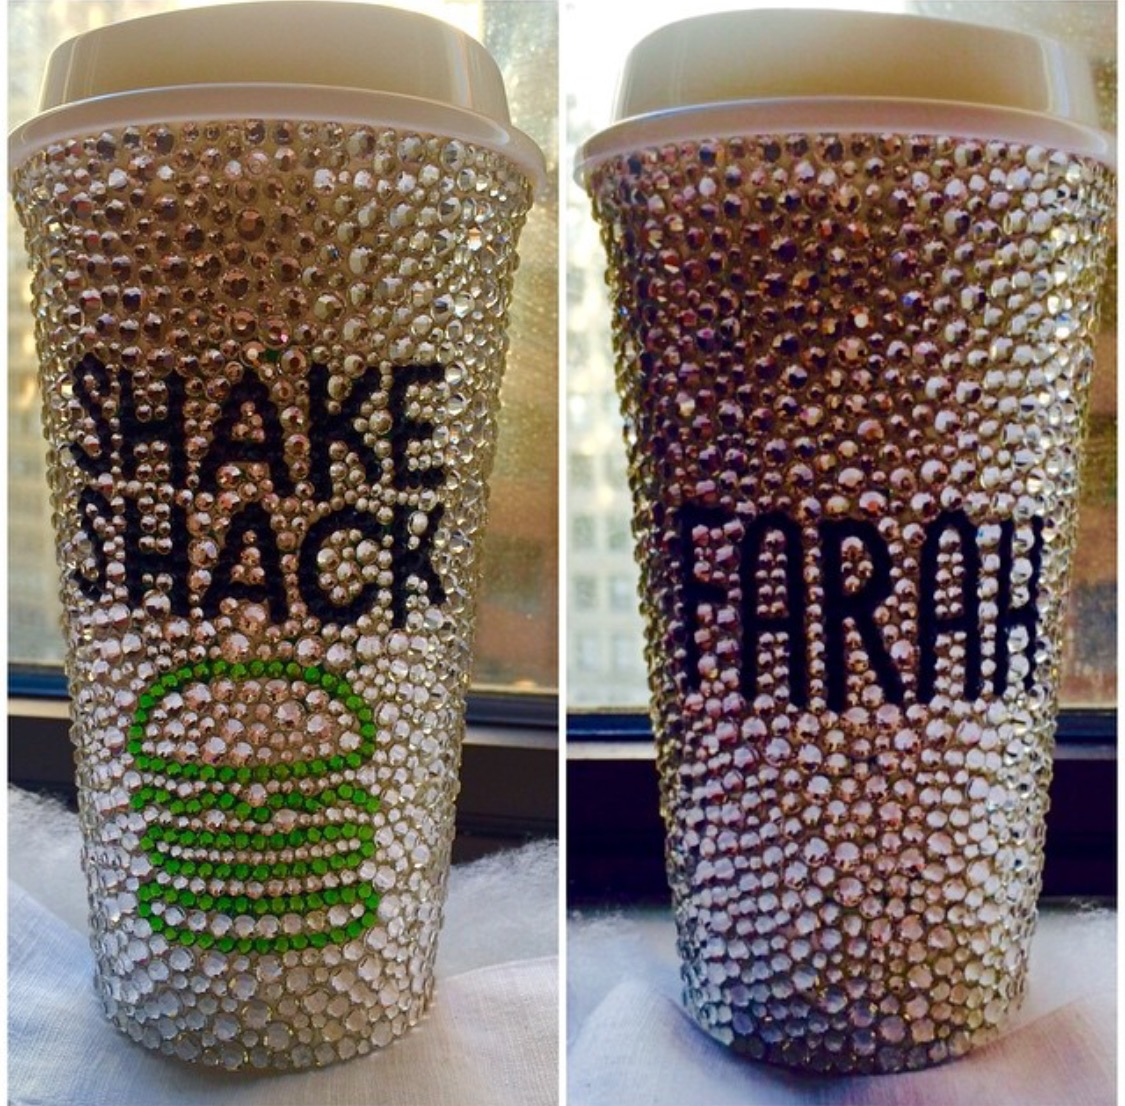 ALL THAT GLITTERS IS FARAH AT SHAKE SHACK! My mesmerizing and sparkly Swarovski crystal encrusted custom Shake Shack cup made by artist Justina Penrod!